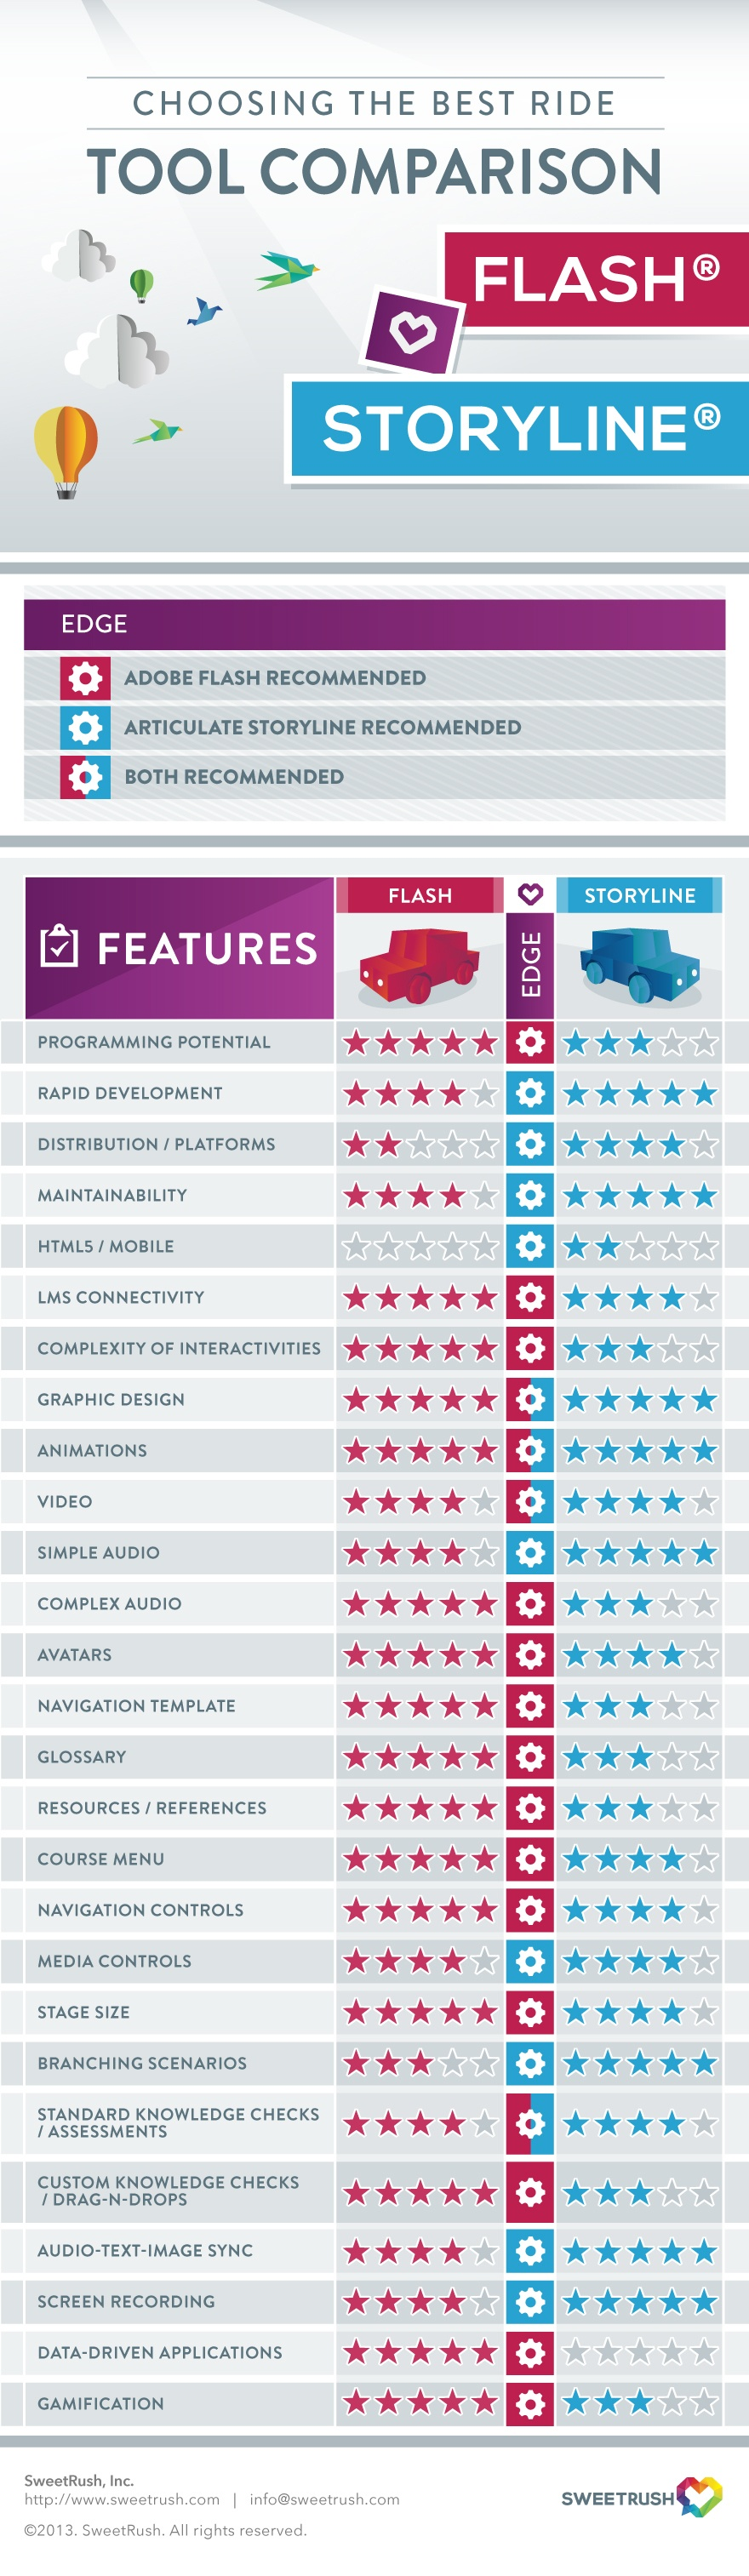 Adobe-Flash-vs-Articulate-Storyline-Infographic